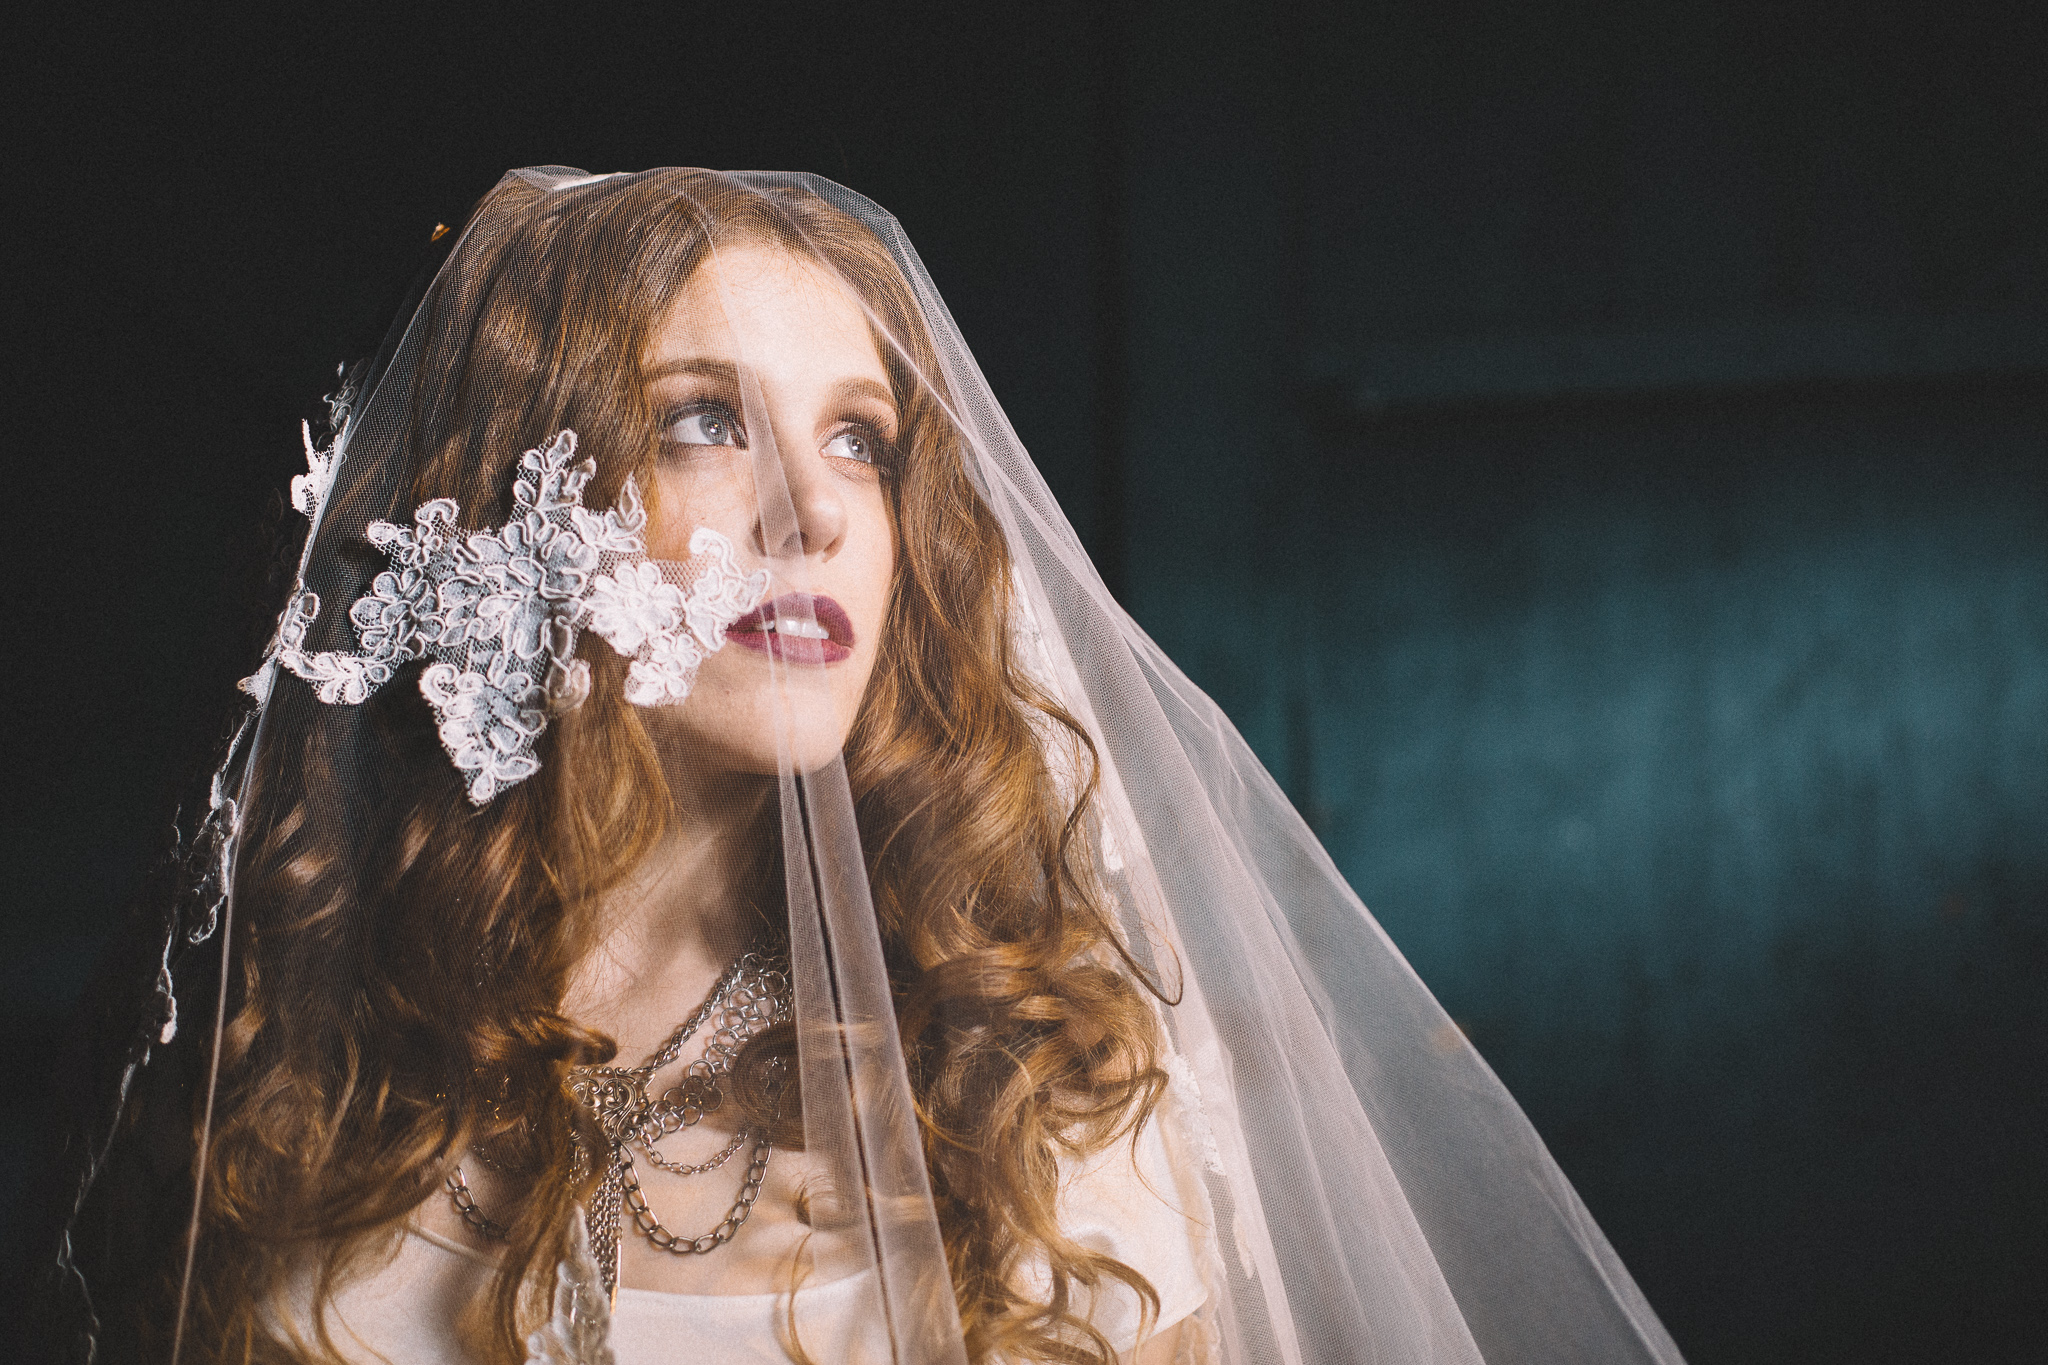 ashley in the  serafina lace veil  // photo by amanda kolstedt photography // hair by karen of iloveblush // makeup by bayla artistry